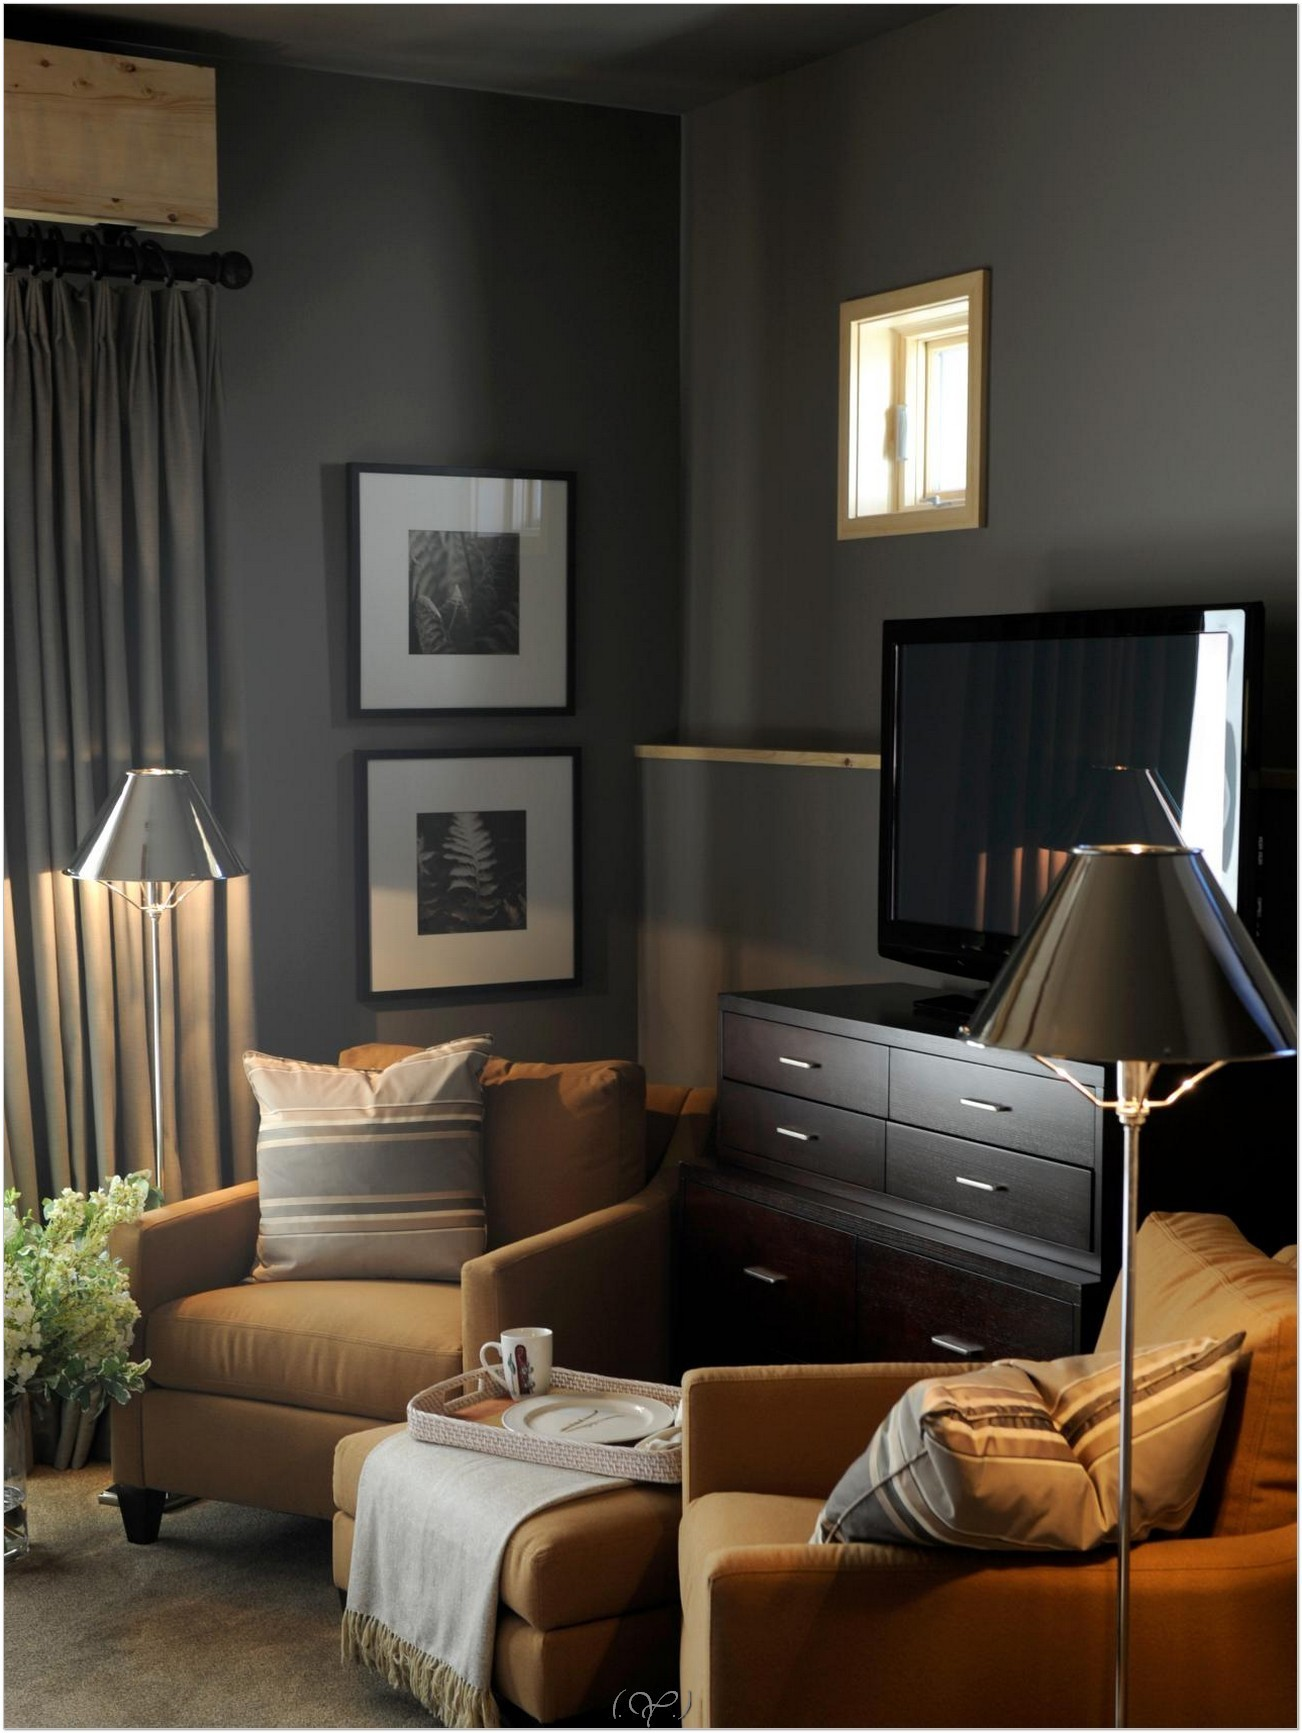 Bedroom Sitting Area Furniture Ideas Bedroom Sitting Area Furniture Ideas Hawk Haven